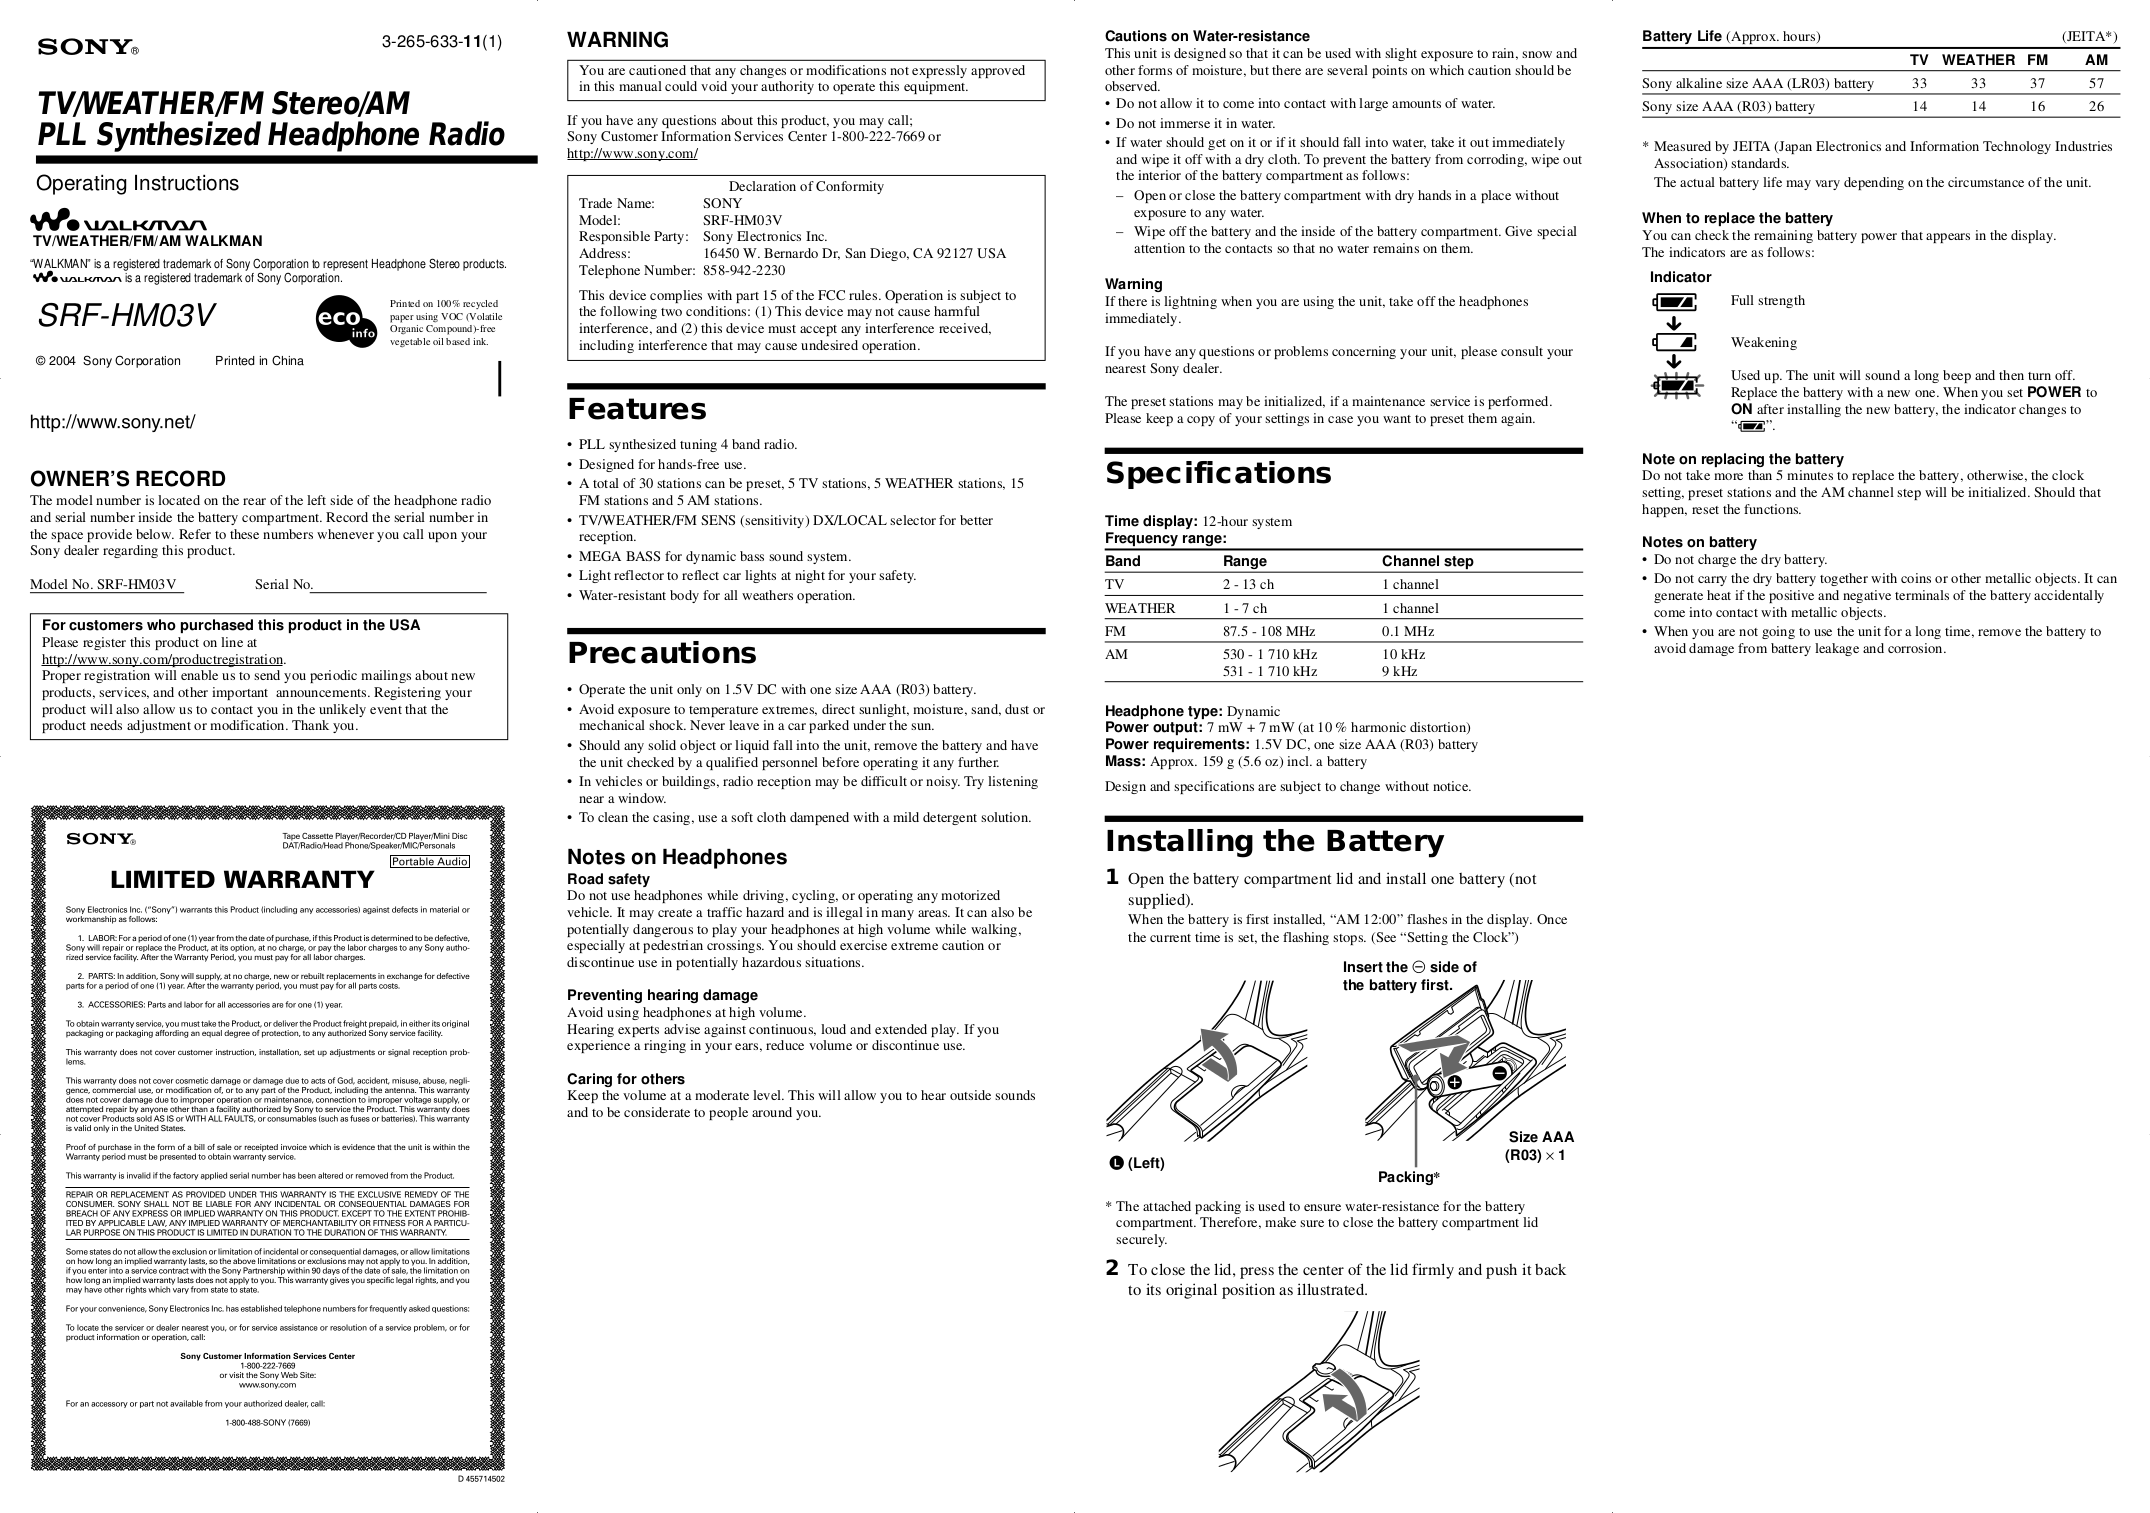 Download free pdf for Sony Walkman SRF-HM03V Radio manual